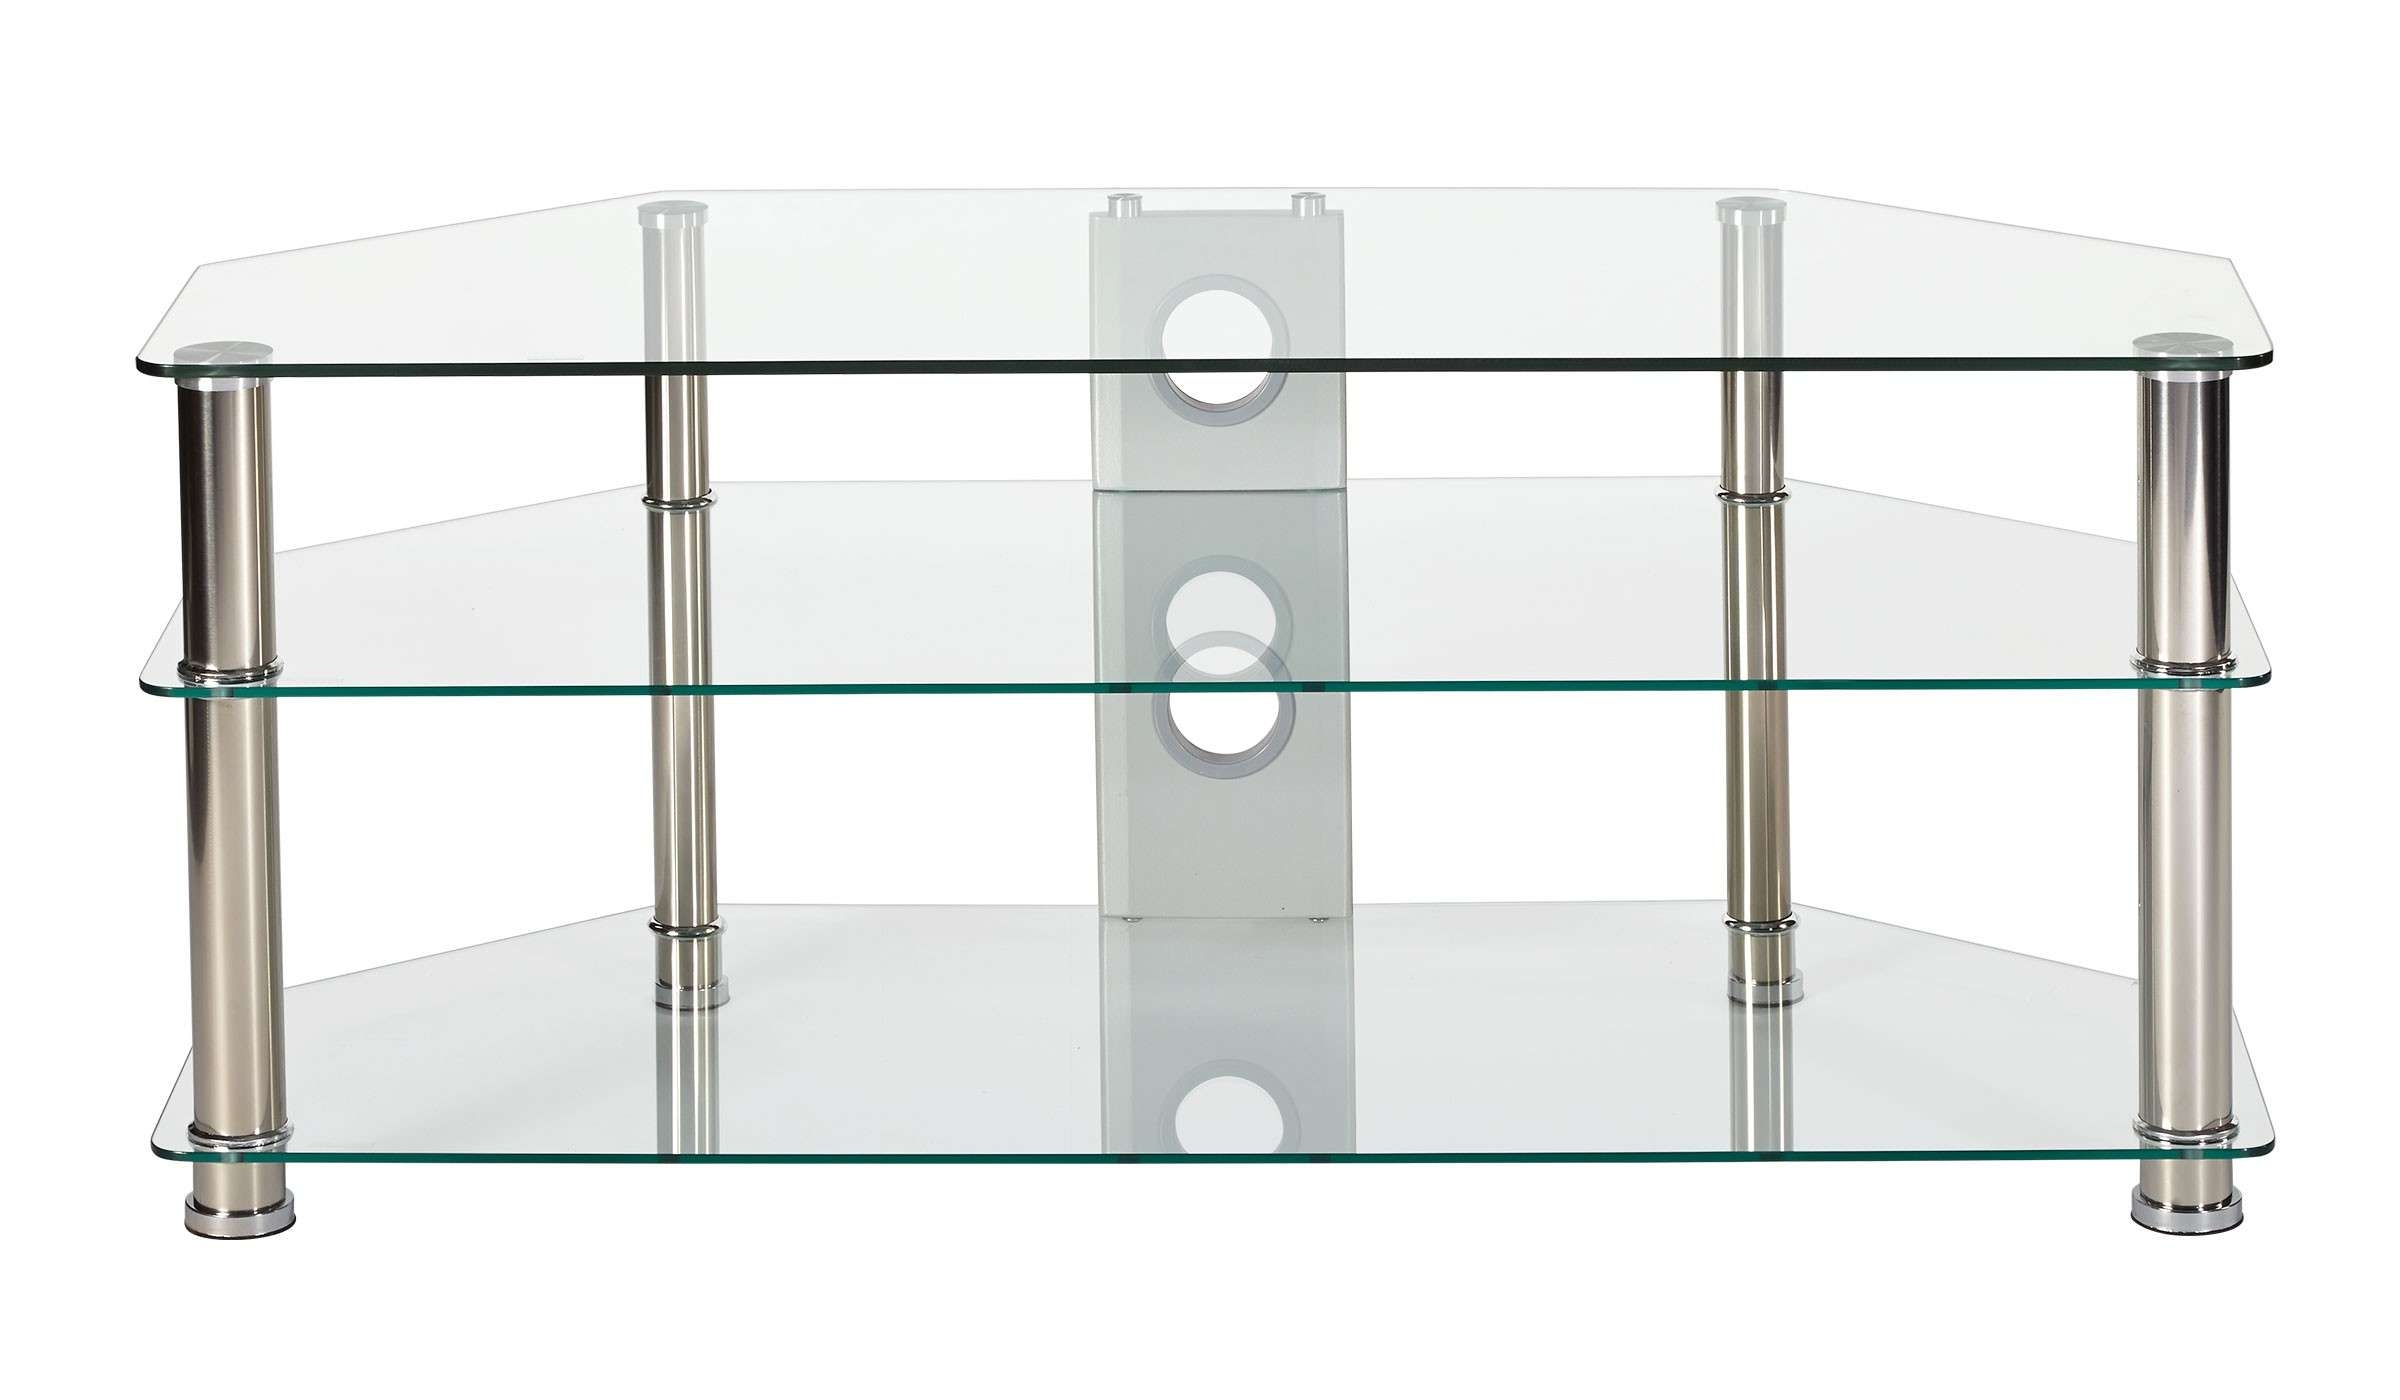 Best Clear Glass Stand For Up To 55 Inch Tv With Chrome Legs Throughout Clear Glass Tv Stands (View 3 of 15)